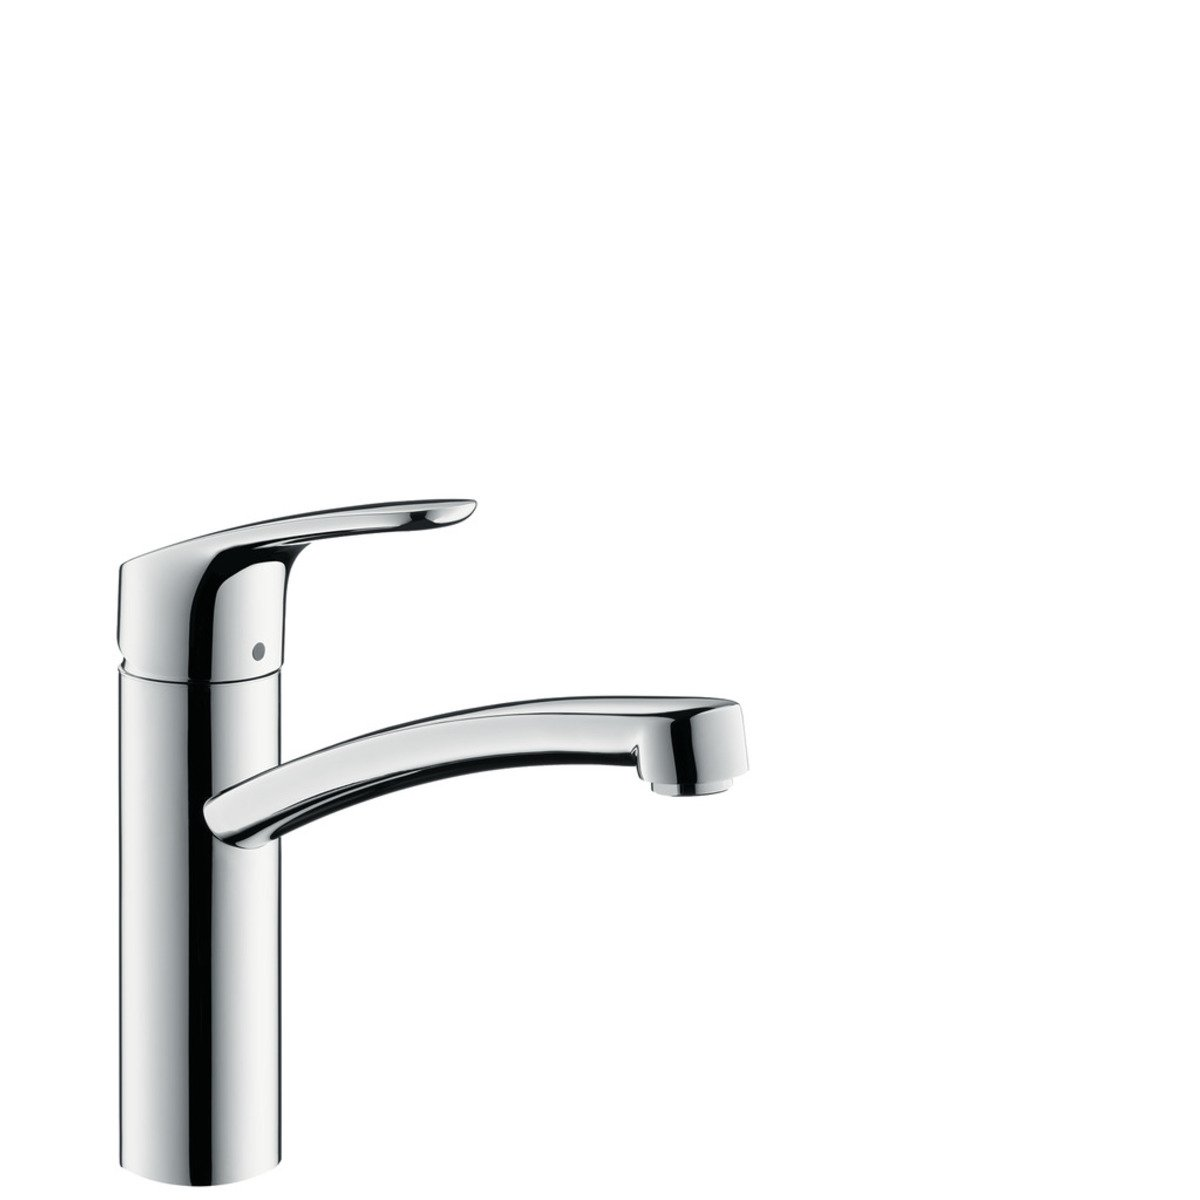 hansgrohe focus e2 robinet de cuisine avec bec tournant chrome 31806000. Black Bedroom Furniture Sets. Home Design Ideas